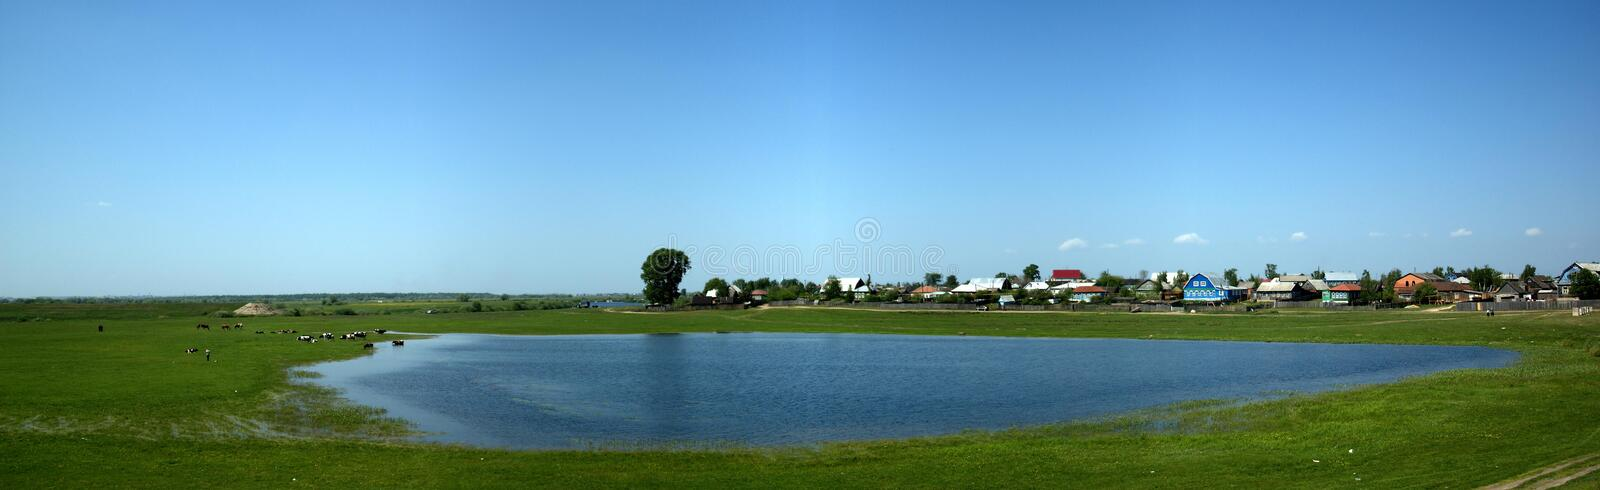 Panorama in village with blue lake and green grass